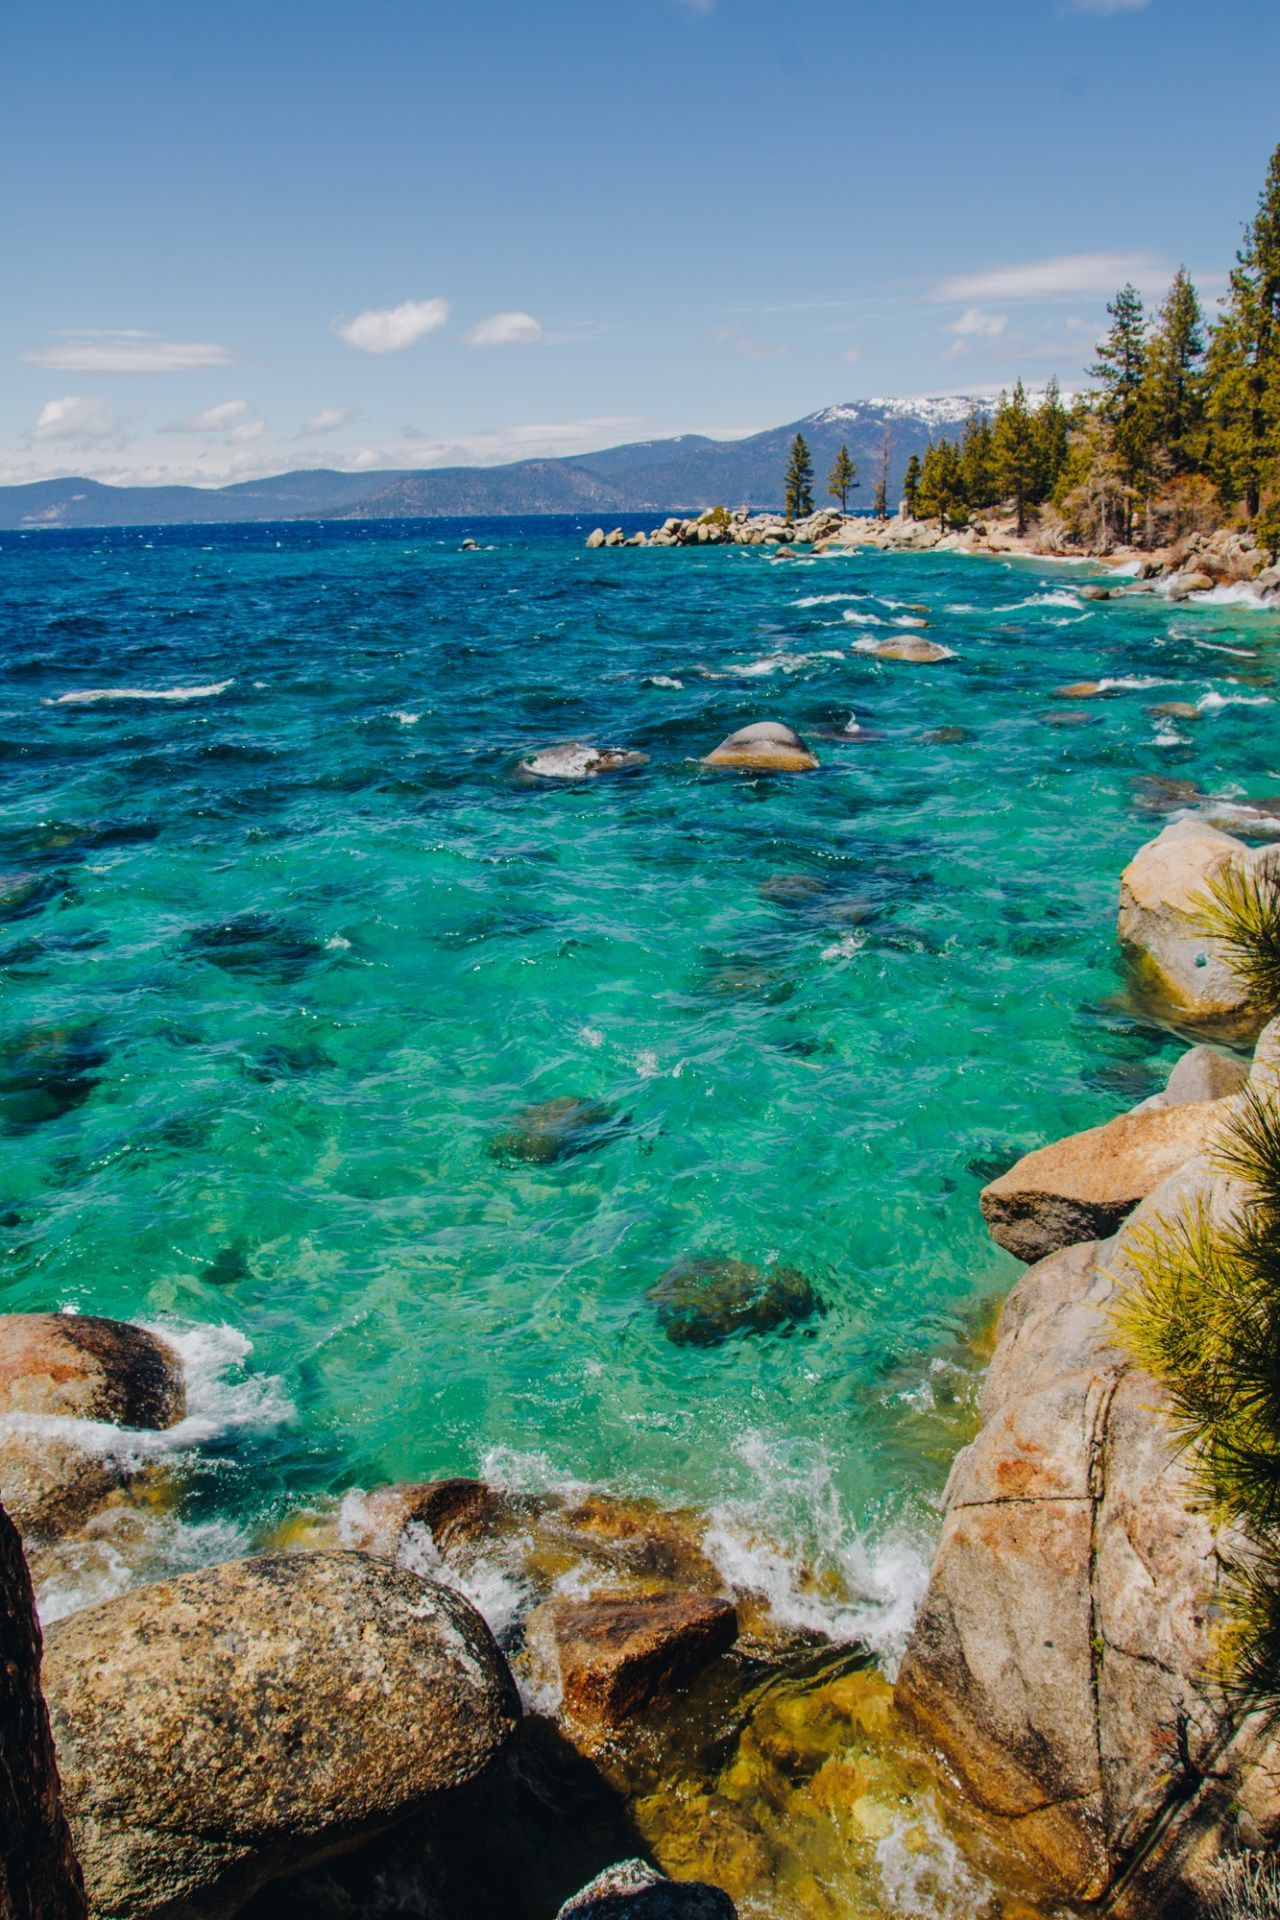 Lake Tahoe Is A Large Freshwater Lake In The Sierra Nevada Mountain Nevada 1280 1920 Sierra Nevada Mountains Lake Tahoe Sierra Nevada